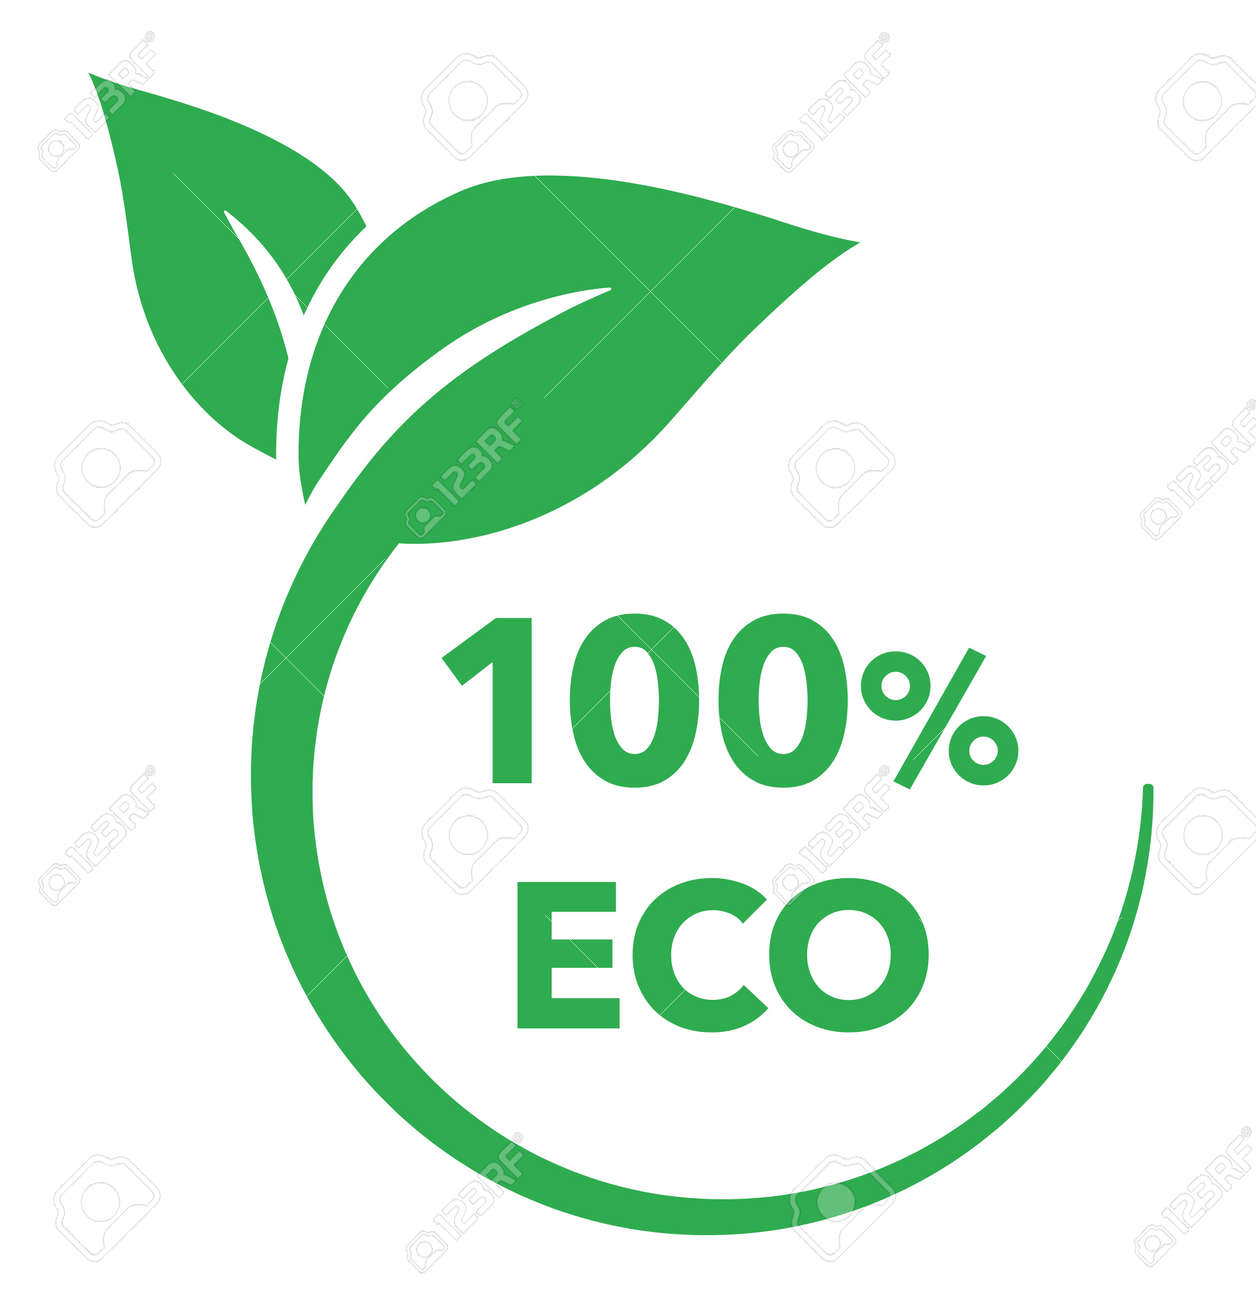 Leaf and ecology vector mark - 167577544